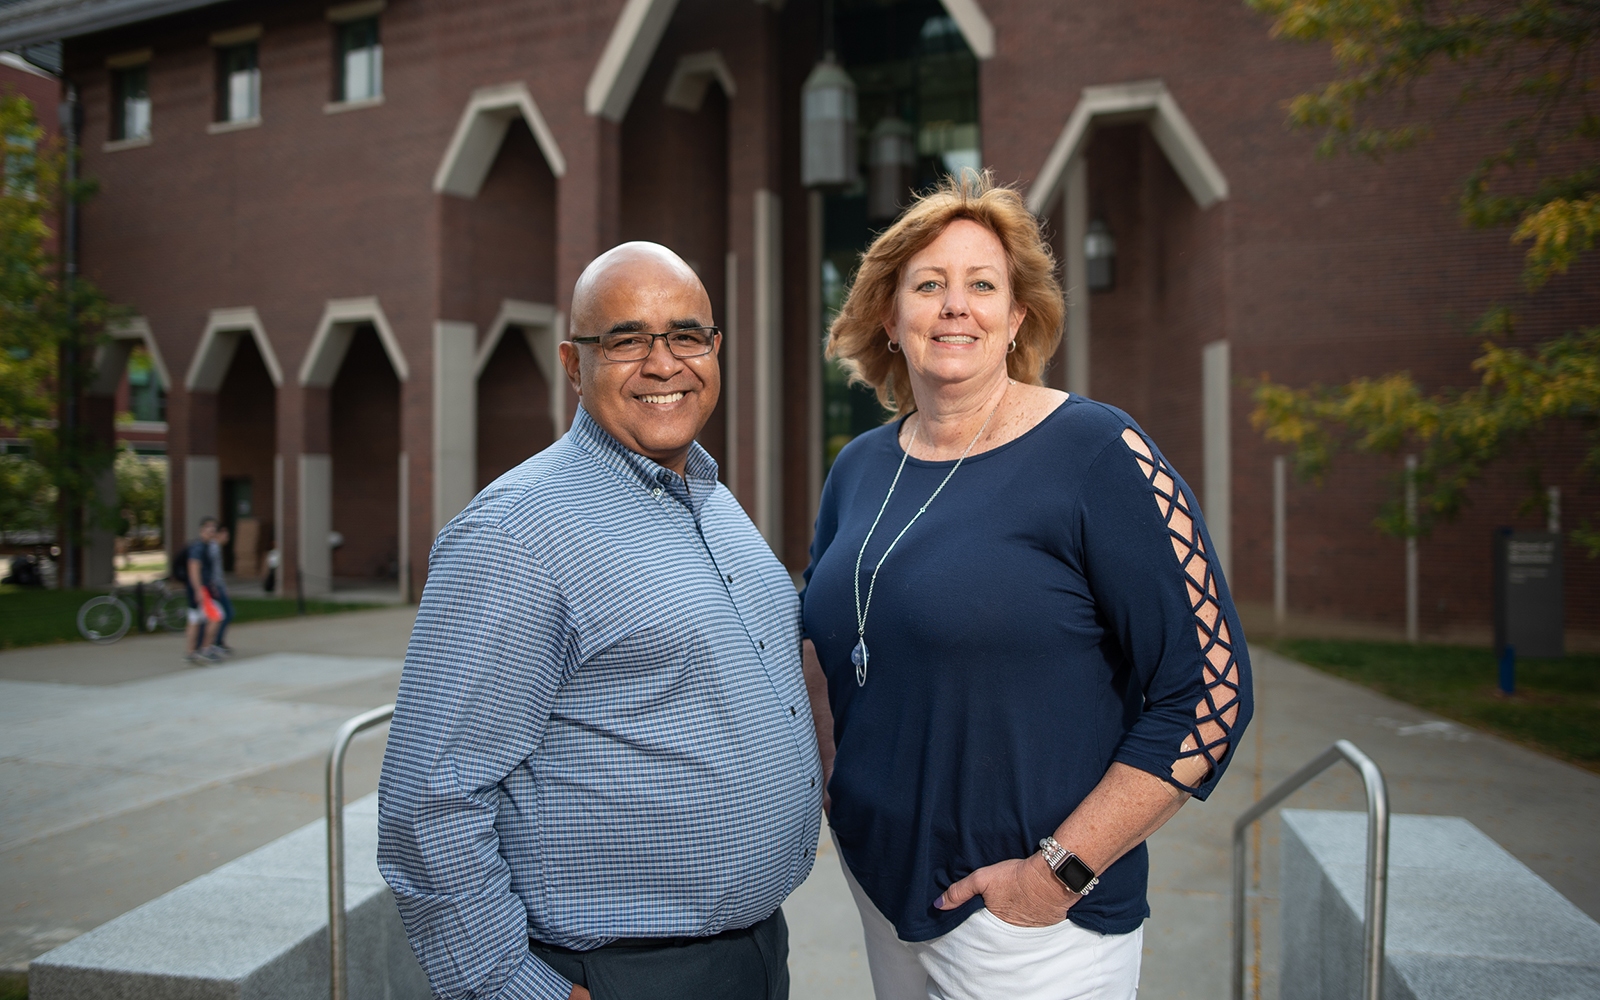 Jose M. Cruz (left) and Lucy Gilson (right) have been named associate deans in the UConn School of Business. Gilson has taken on the mantle of associate dean for faculty and outreach, while Cruz is now the associate dean for graduate programs. (Nathan Oldham / UConn School of Business)